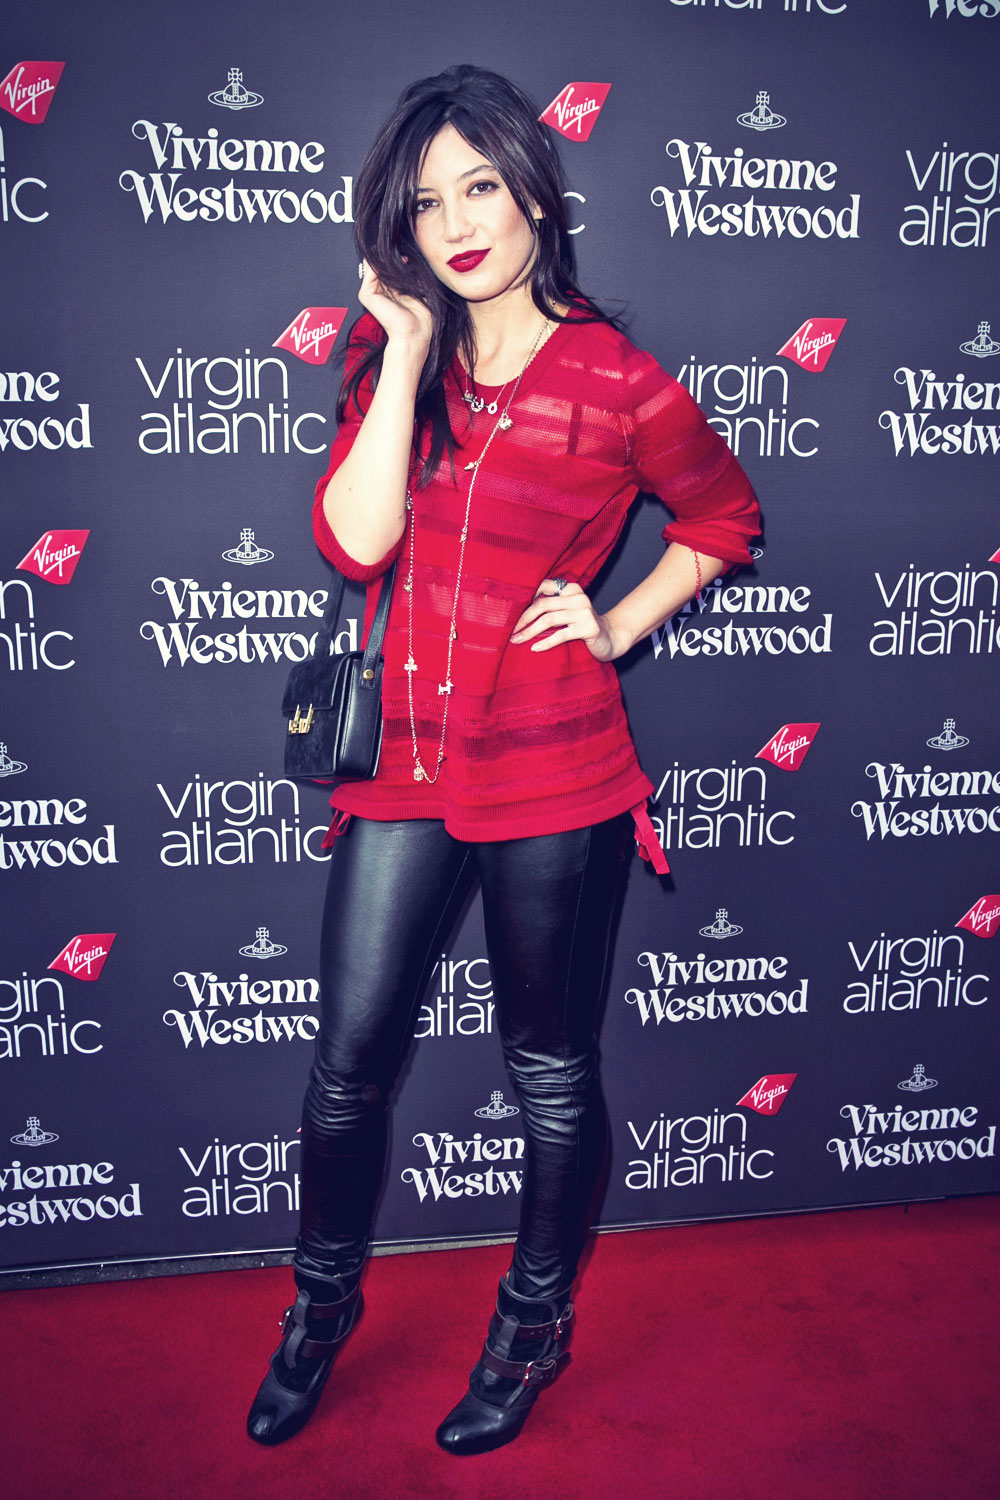 Daisy Lowe at Virgin Atlantic's New Vivienne Westwood Uniform Collection